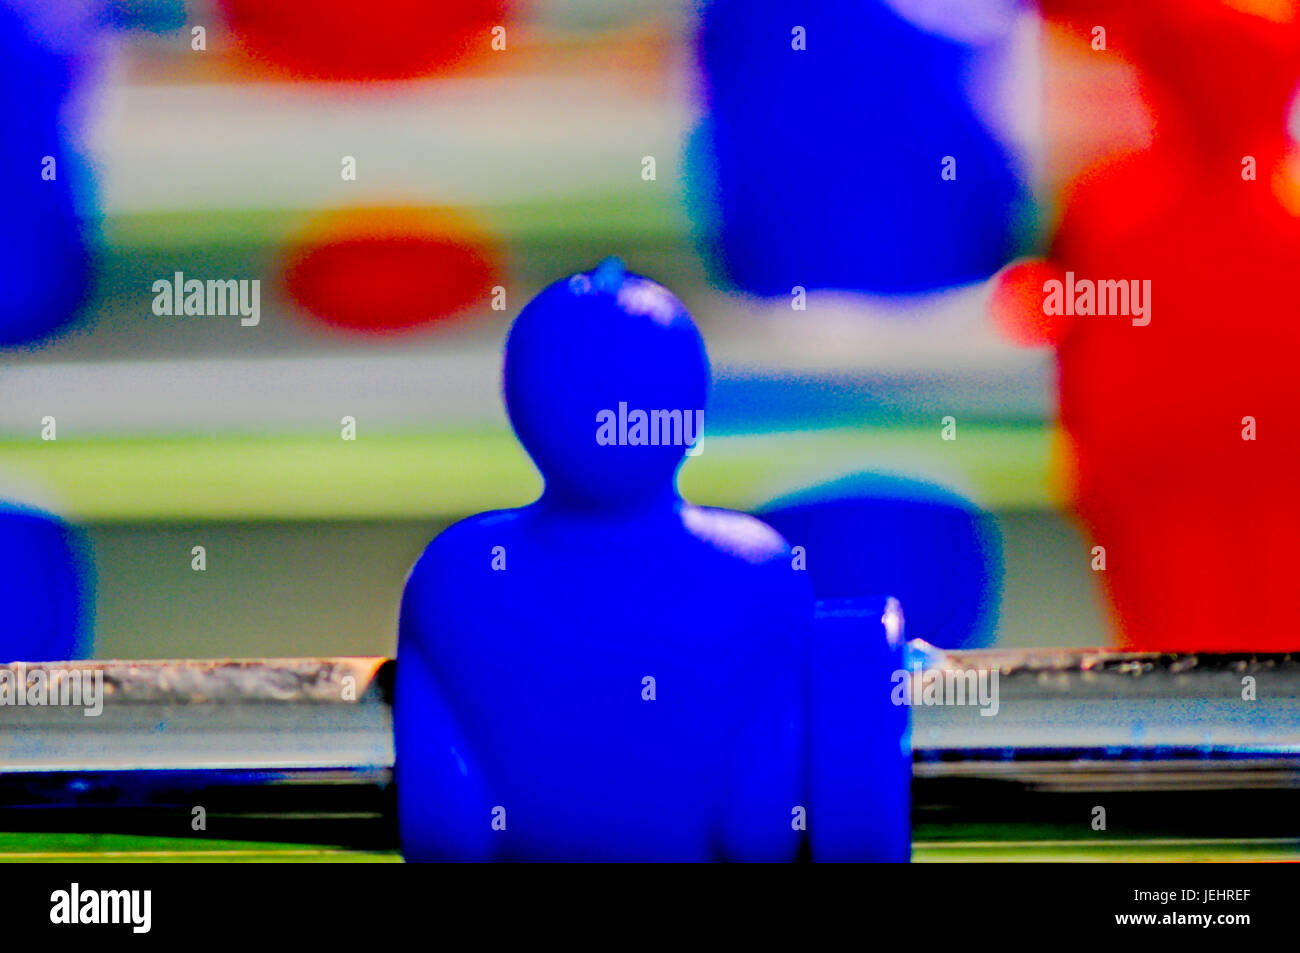 Tischfußball, table football - Stock Image